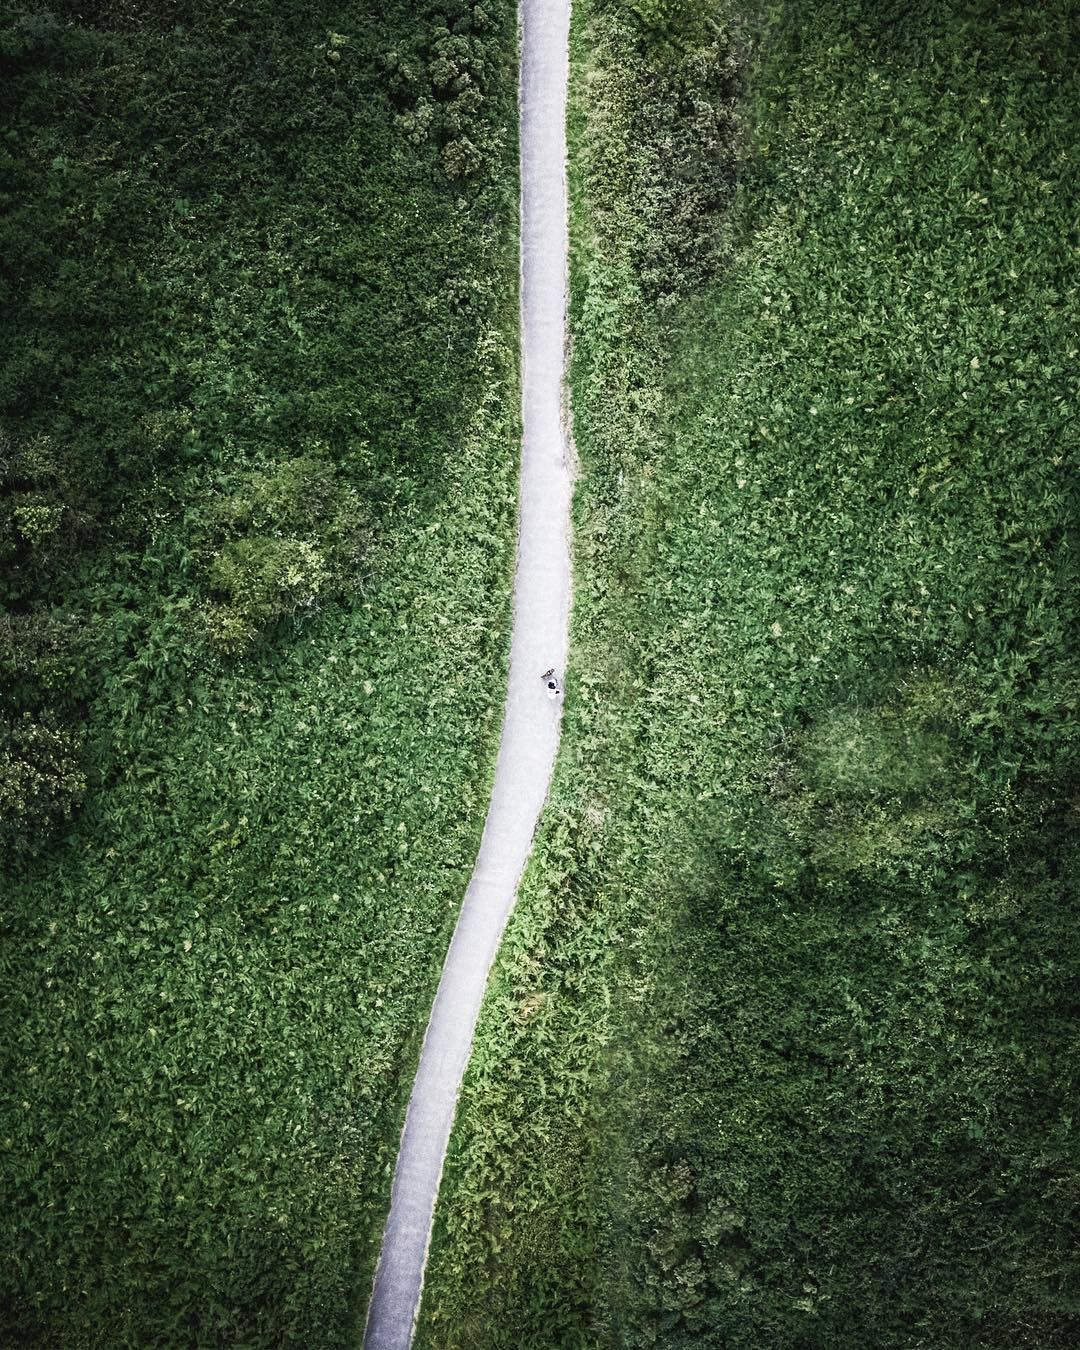 Ireland From Above: Gorgeous Drone Photography by Sam McAllister | Drone photography, Aerial photography, Drone photos